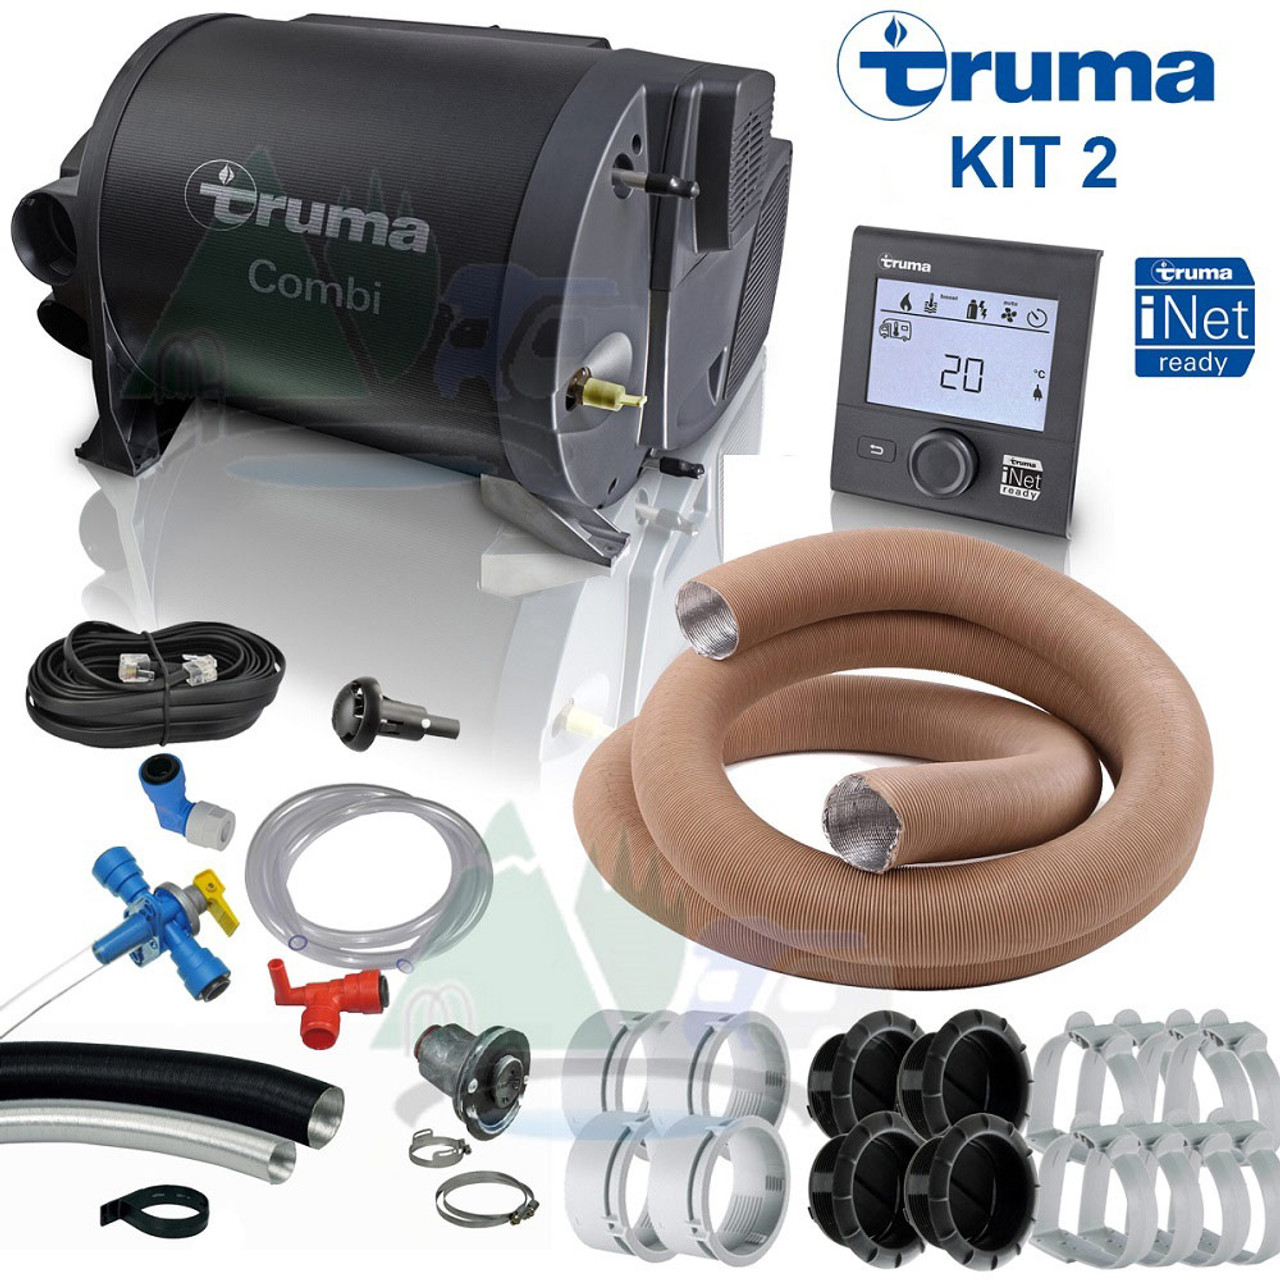 Truma 2E, 4E and 6E space heater and water boiler with ducting - complete kit